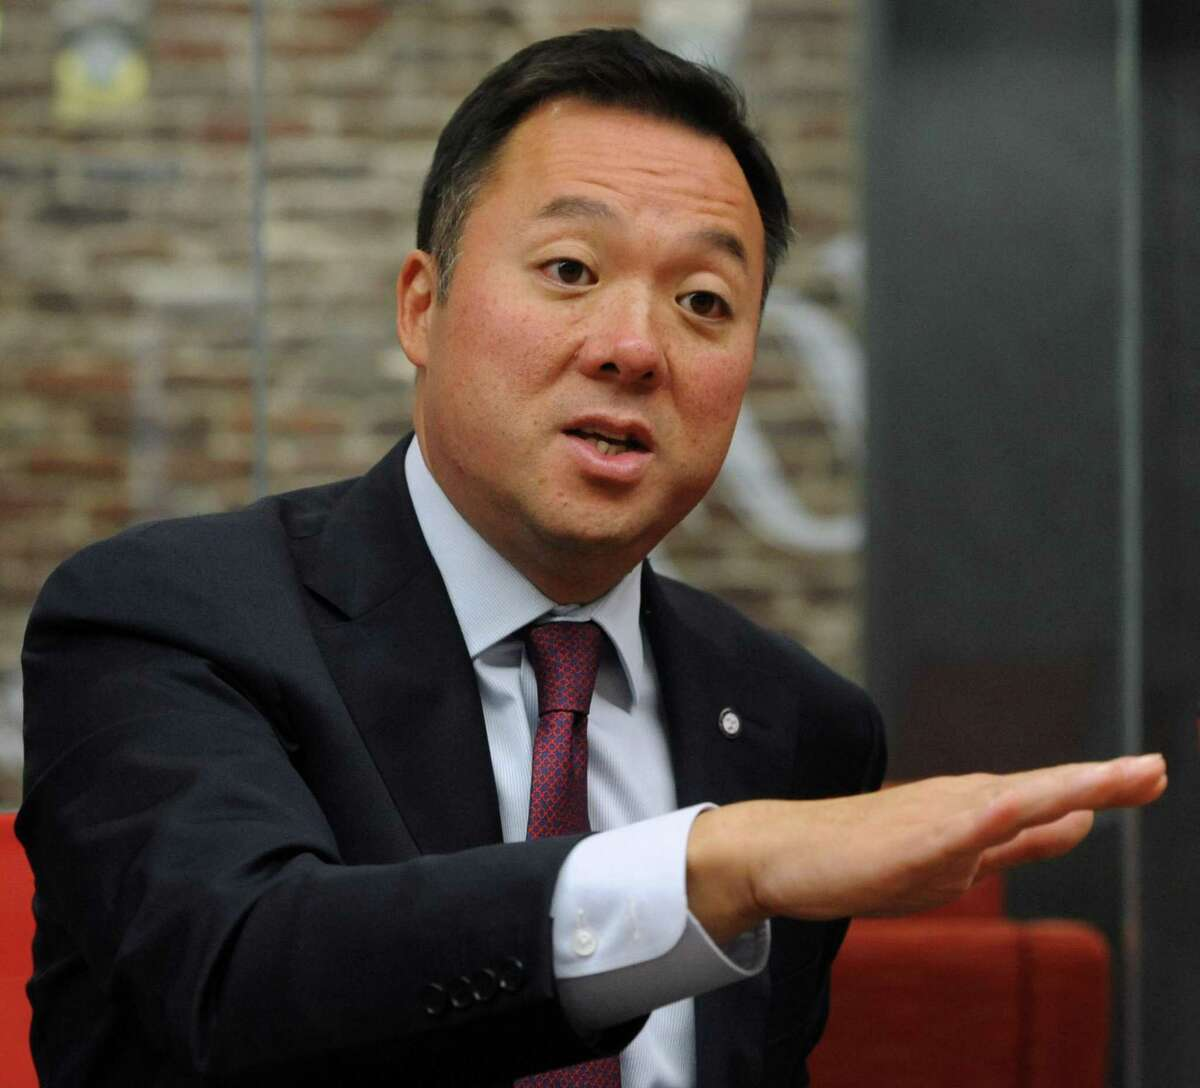 Connecticut Attorney General William Tong opposes bonuses for Purdue Pharma's employees.